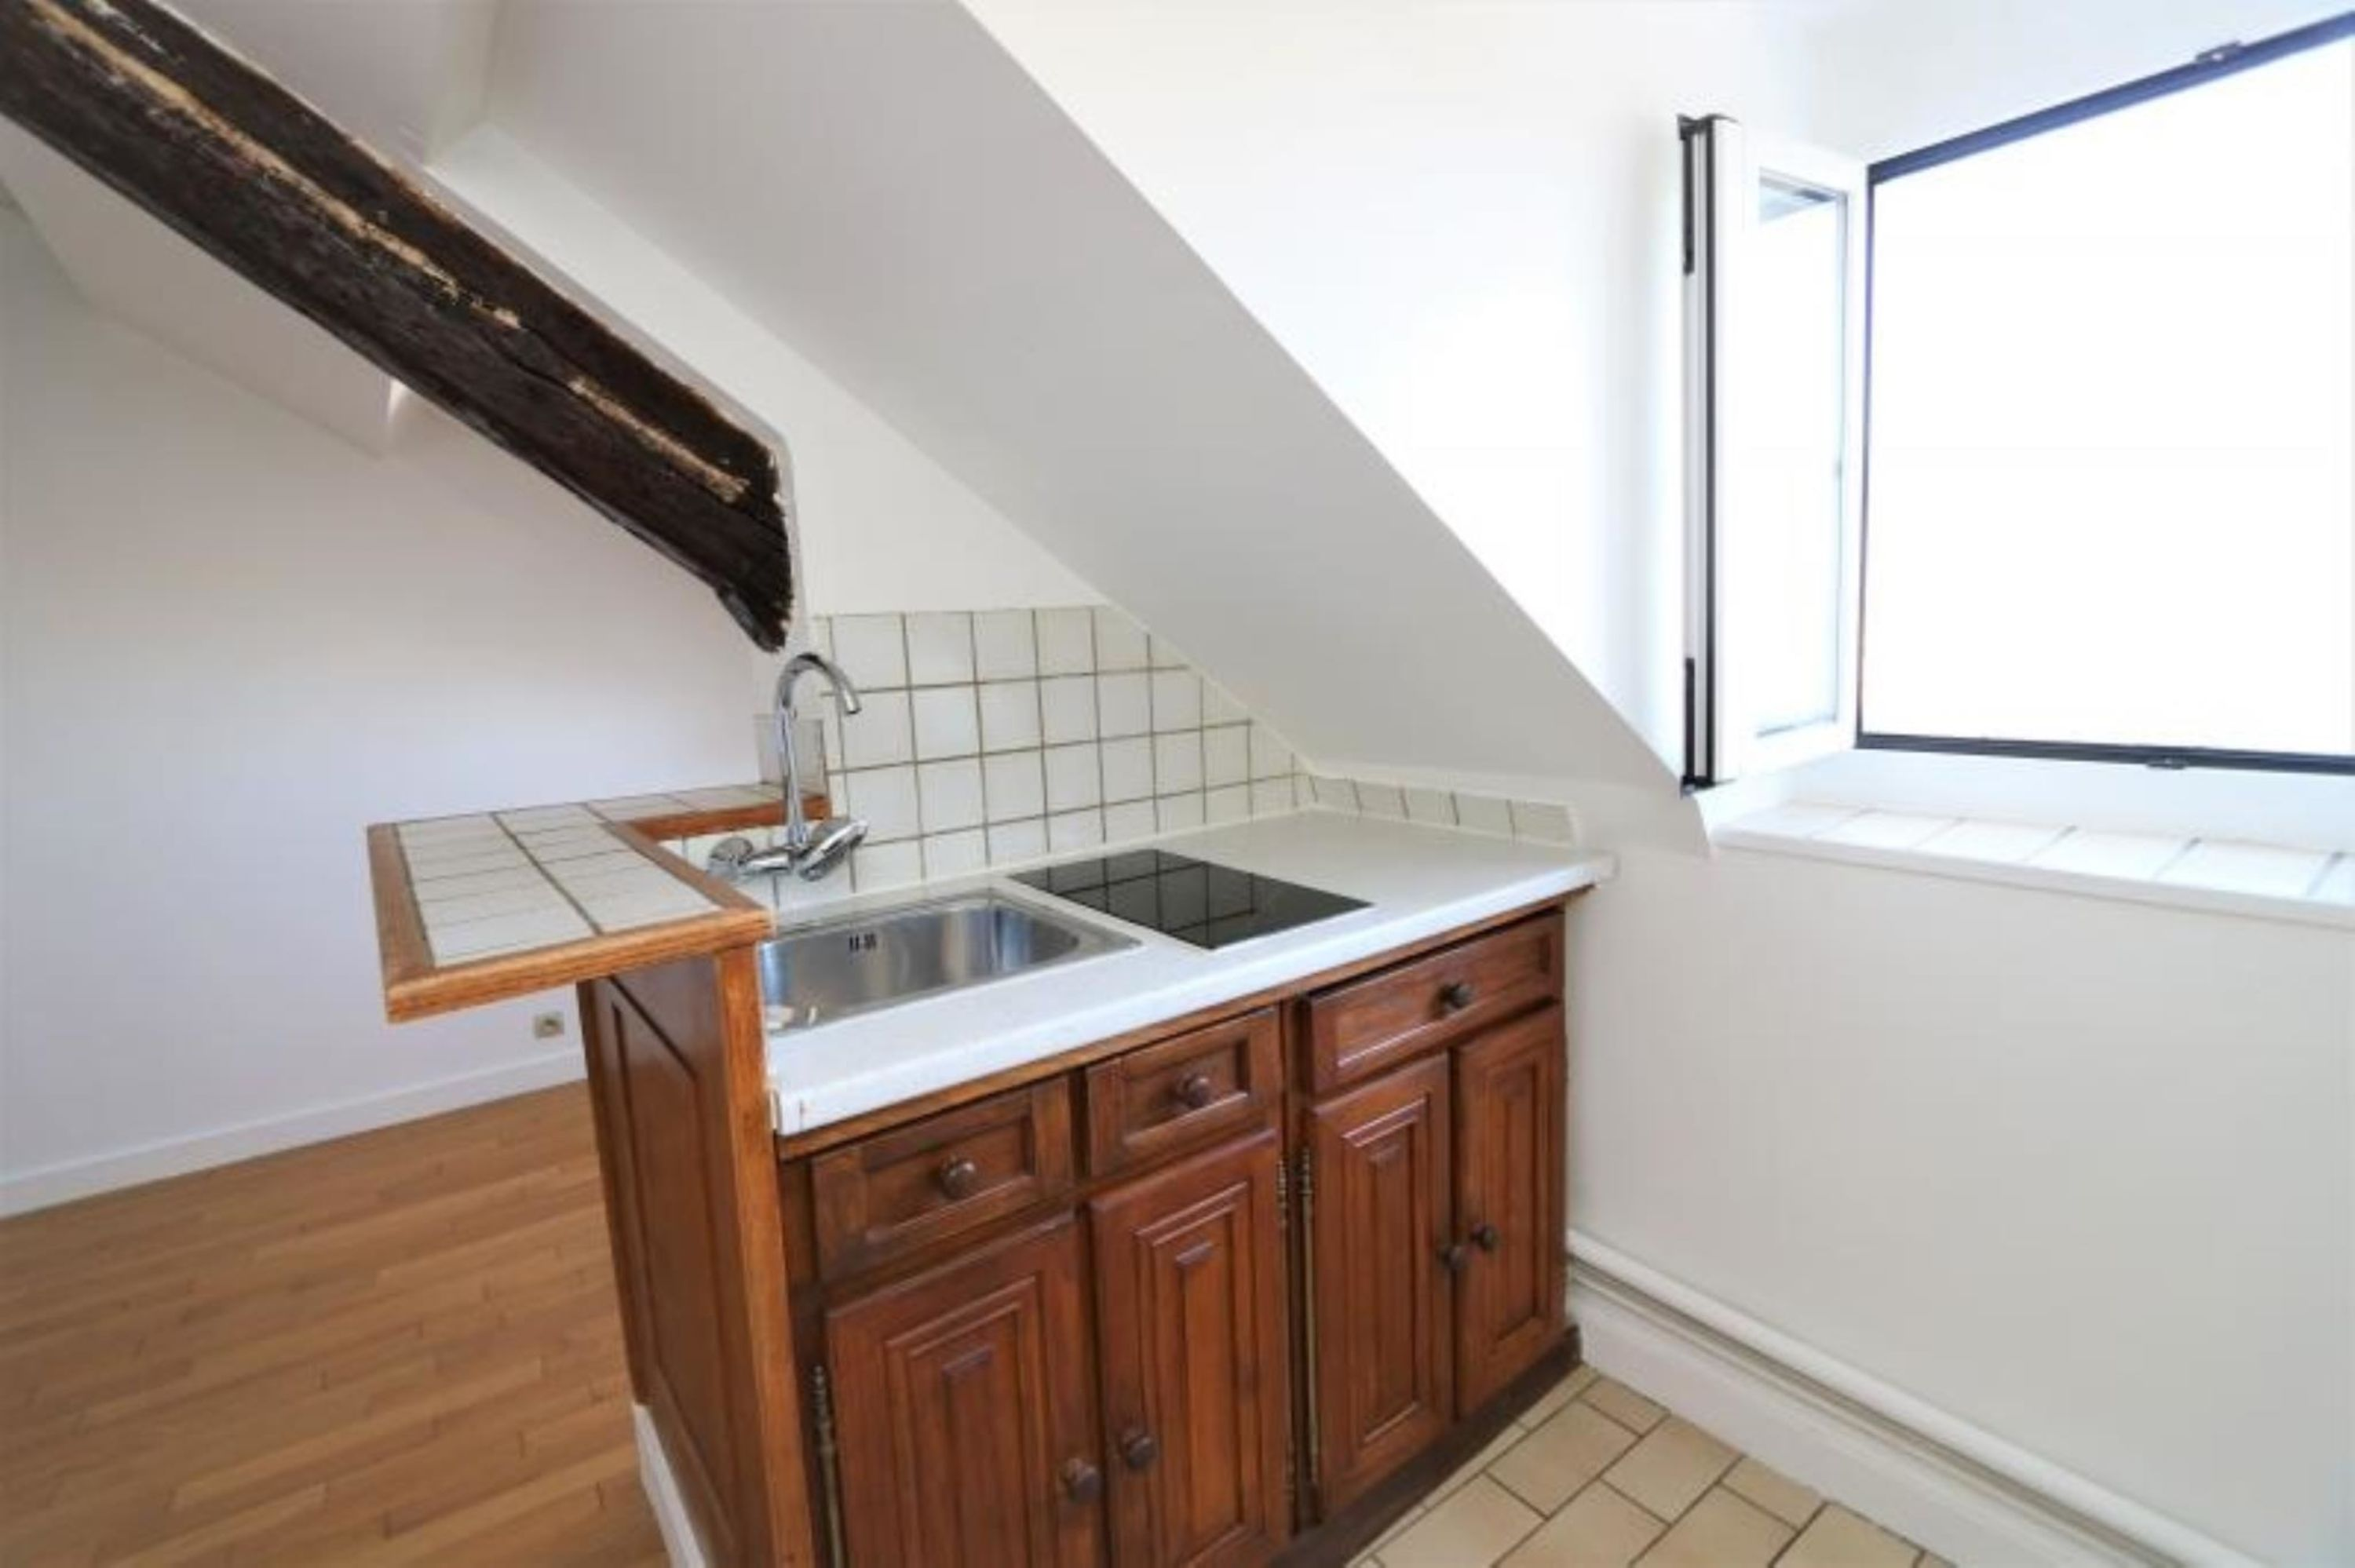 agence immobilière sevres 92 le chesnay 78 achat vente location appartement maison immobilier LMHT ANF EGKNJFXI